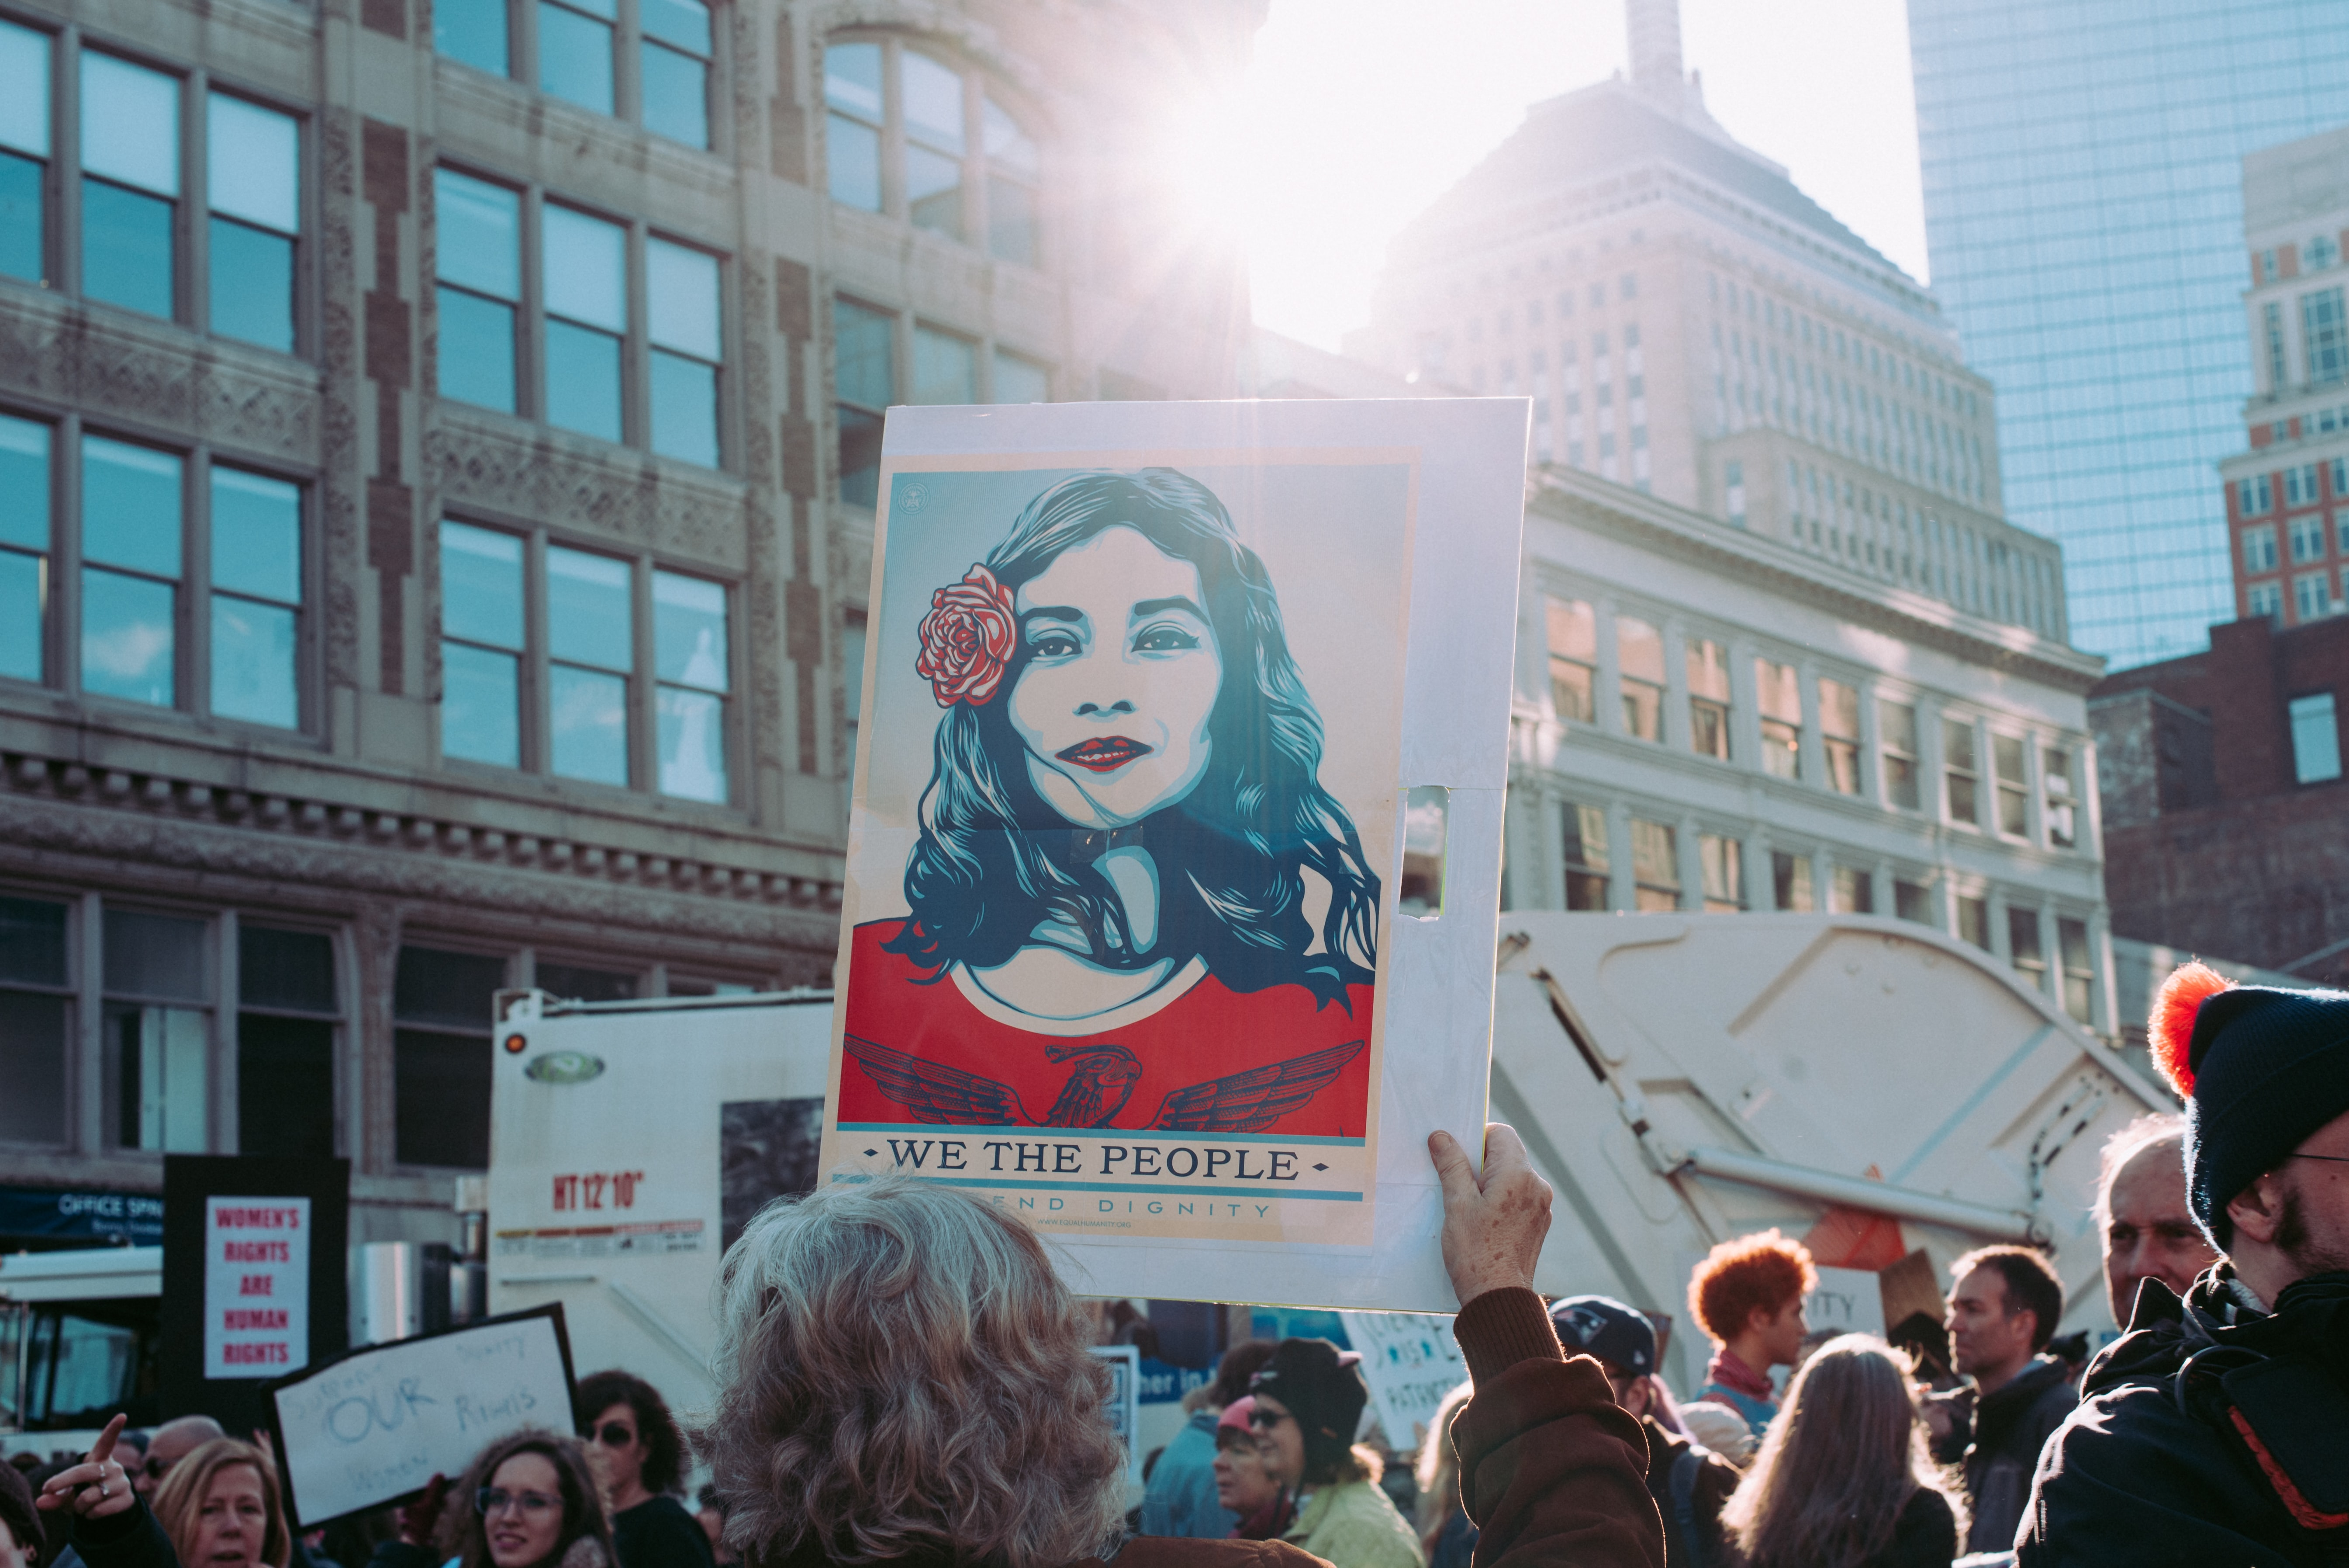 People hold up protest signs at the Women's March in Boston